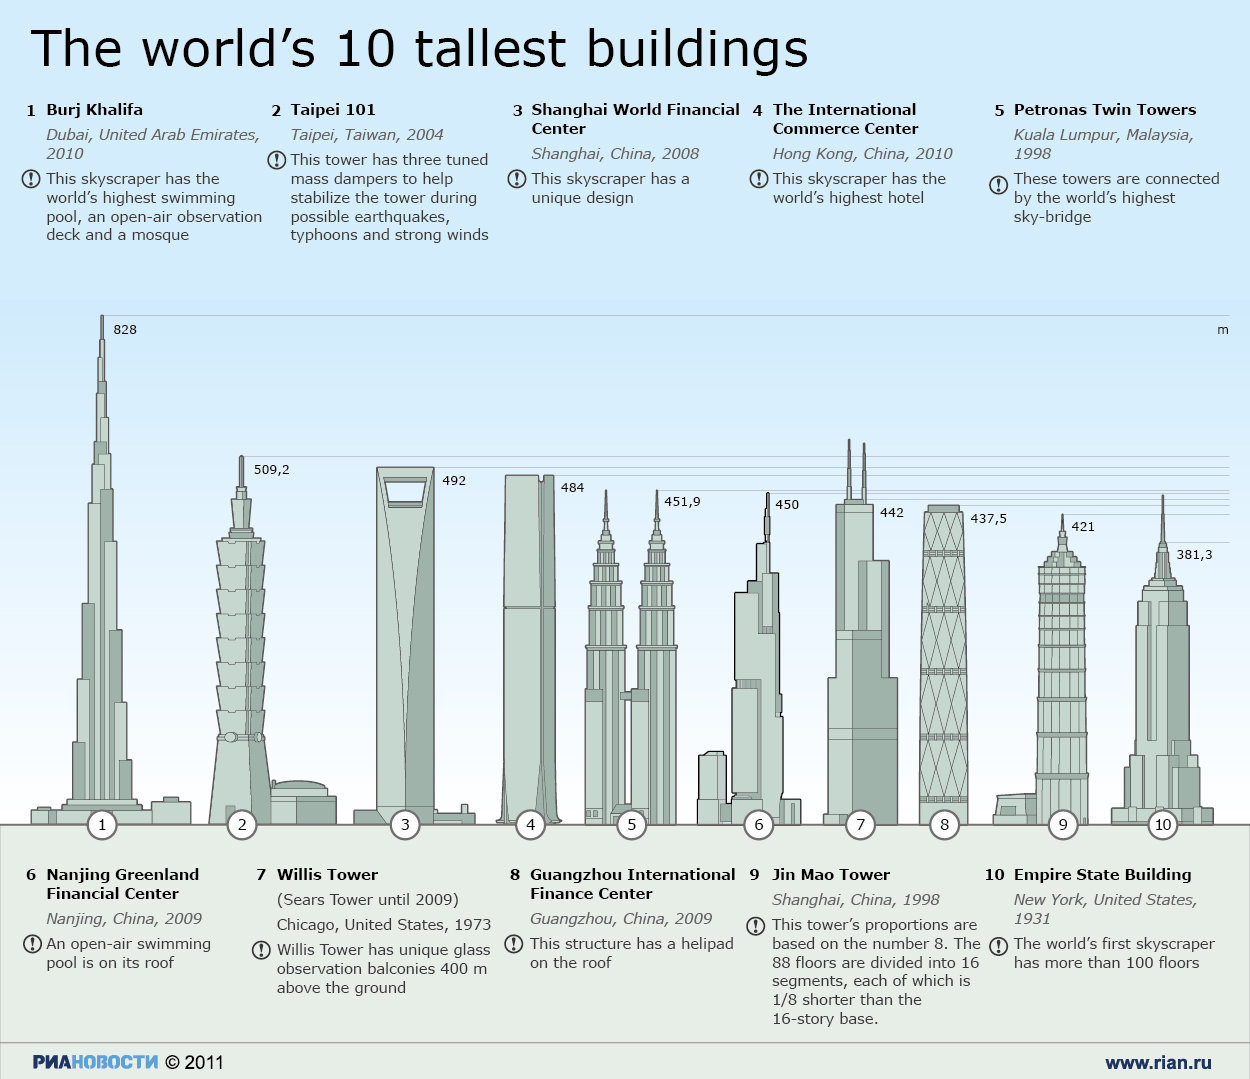 Infographic of the 10 Tallest Buildings of the World, most of which are in East Asia.